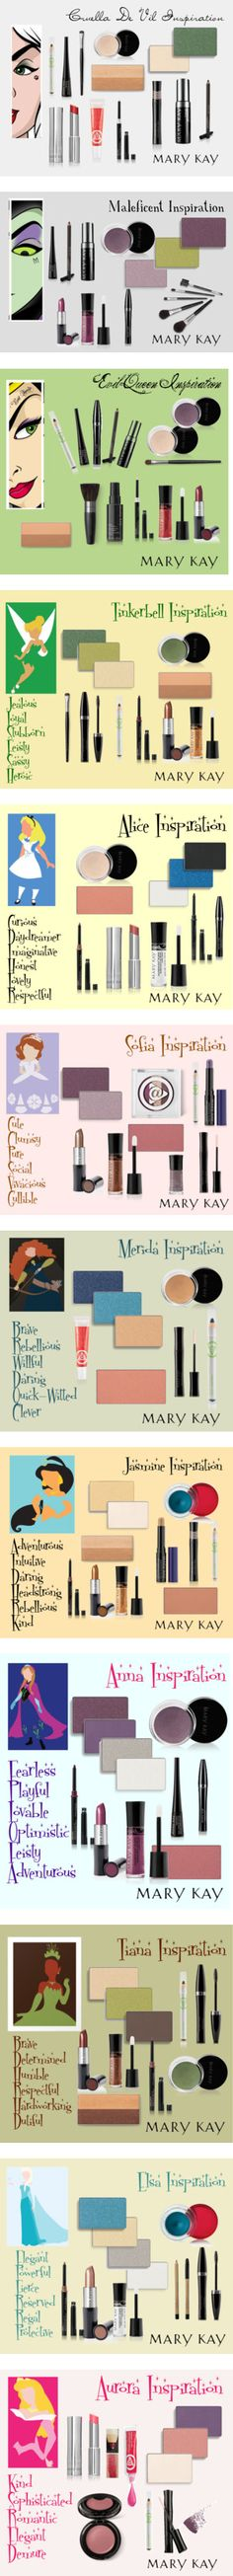 Disney Princess Inspired Beauty Looks by natalie-edmondson on Polyvore featuring beauty, Disney, Mary Kay, disney, Marykay, villains, maleficent, evilqueen, tinkerbell and Disneyprincess